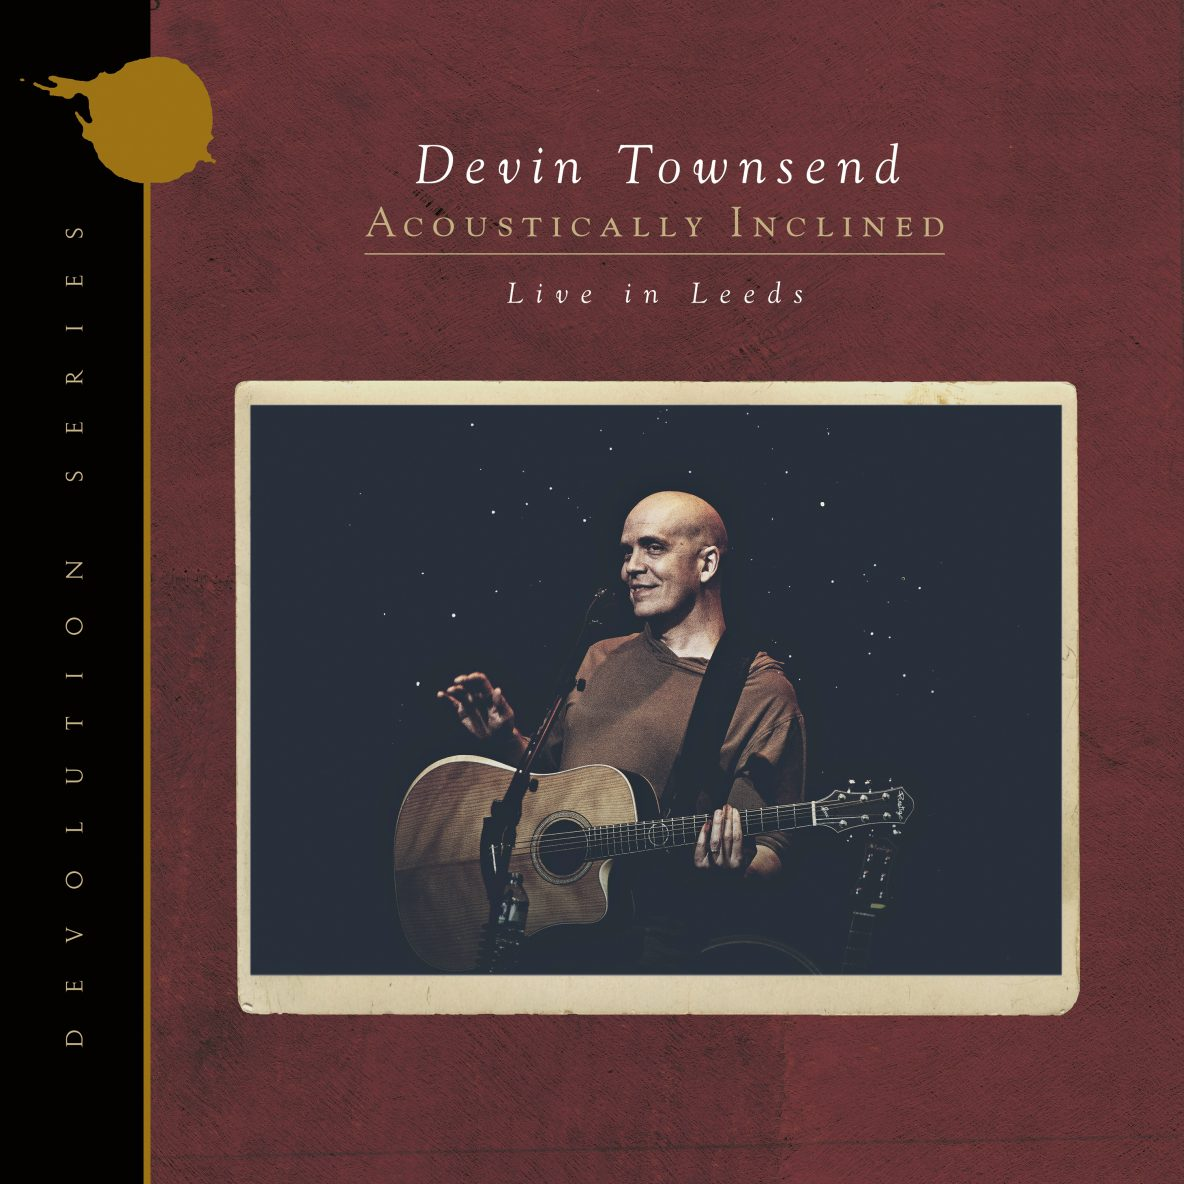 DevinTownsend_Devolution Series #1 – Acoustically Inclined, Live in Leeds